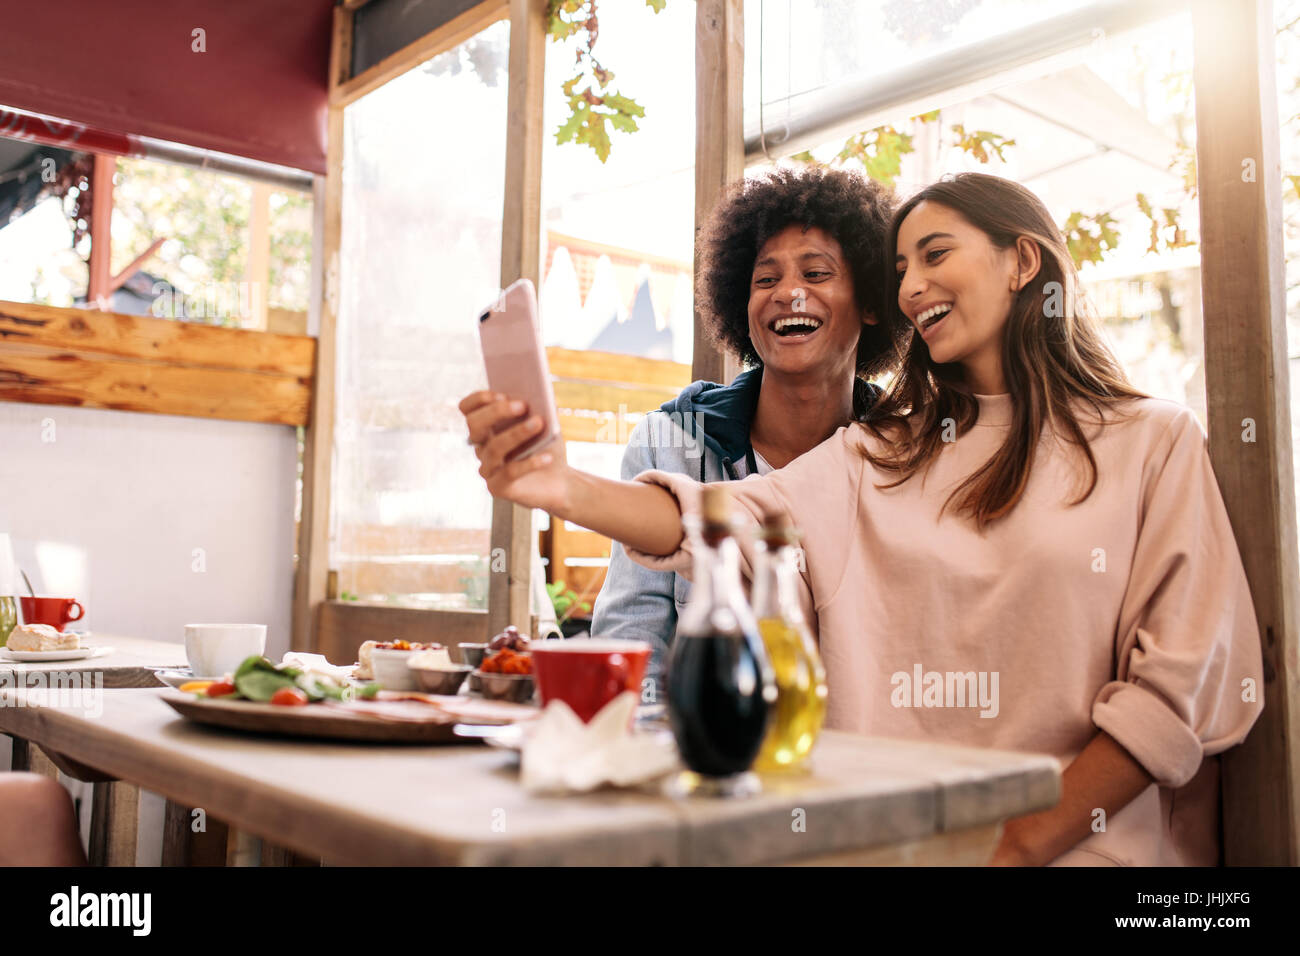 Cheerful woman taking selfie with her friend at cafe. Couple having fun using smartphone at coffee shop - Stock Image